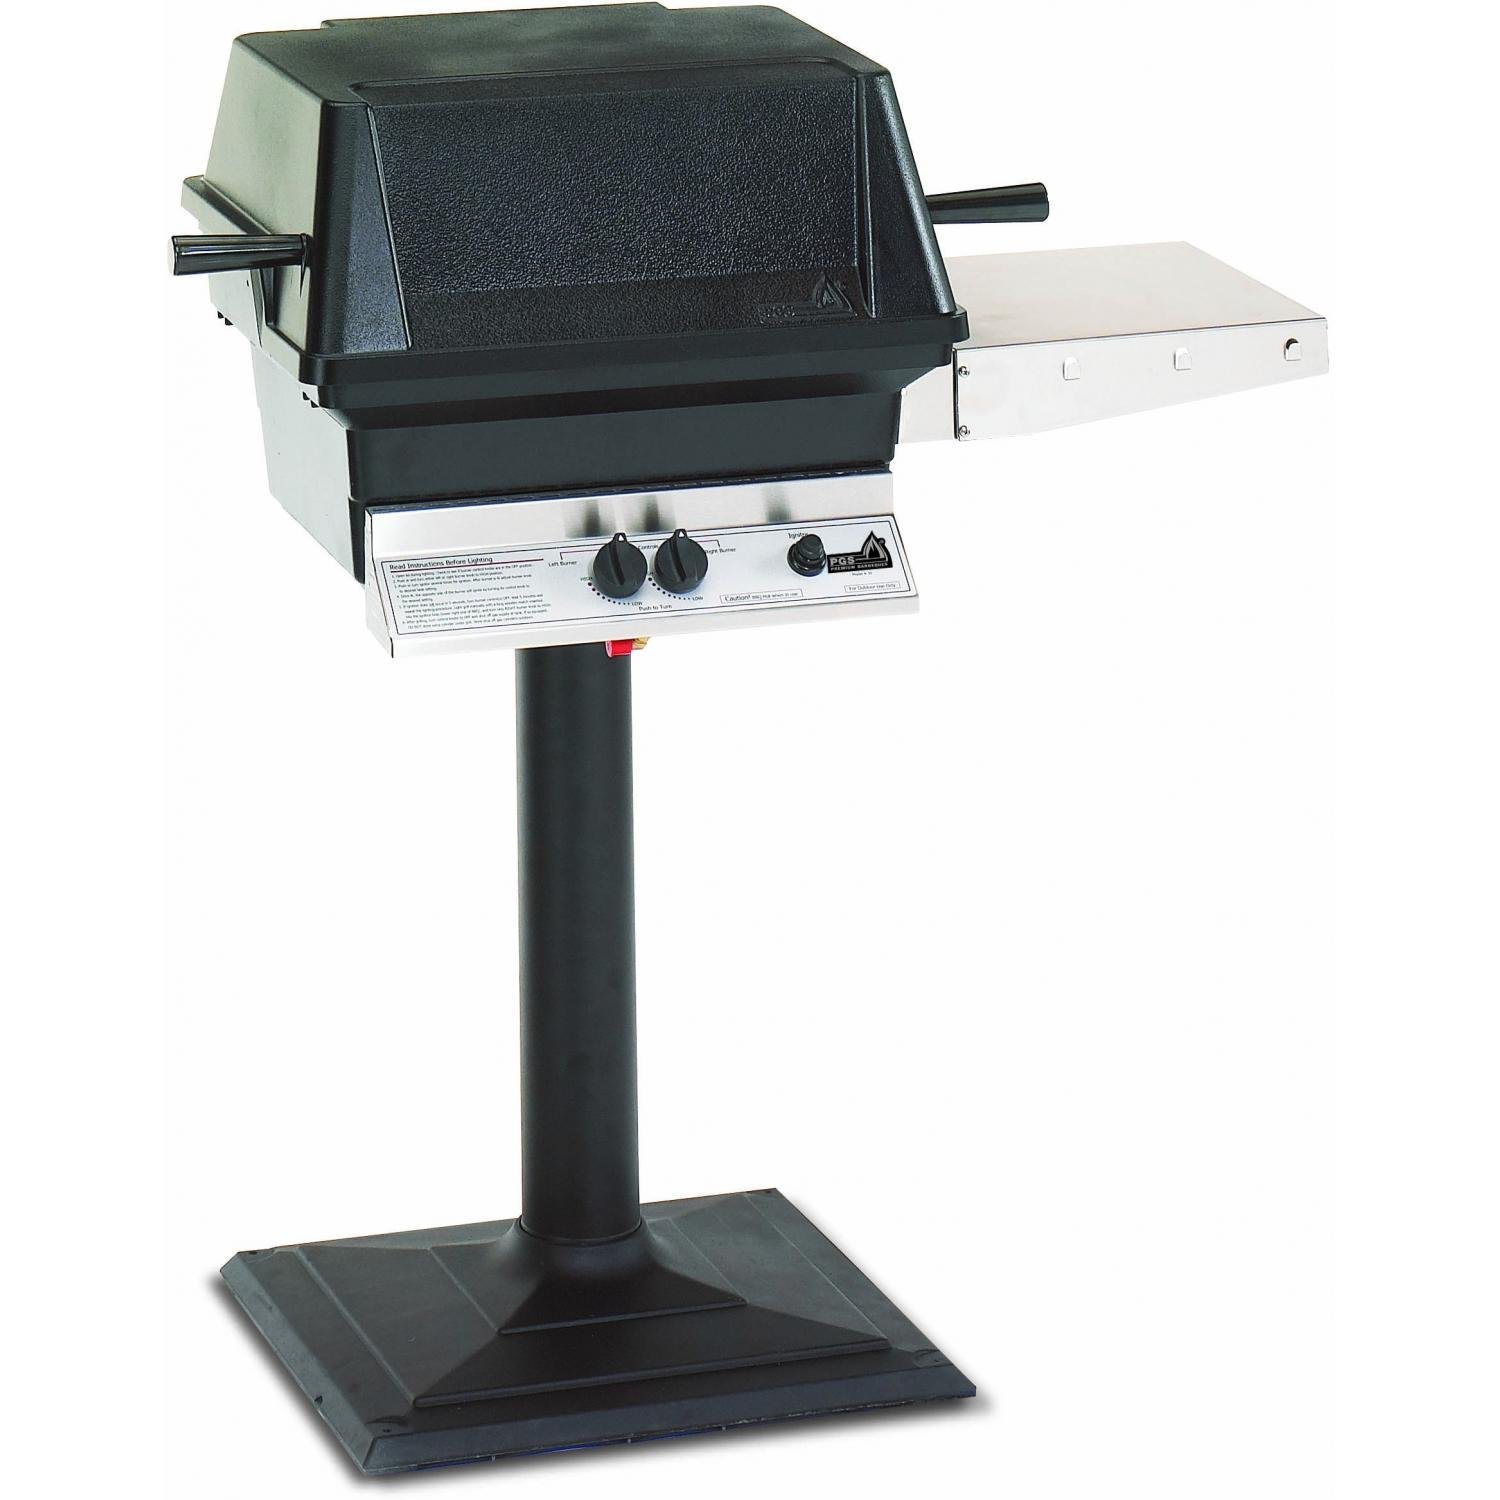 Pgs A30 Cast Aluminum Propane Gas Grill On Bolt-down Patio Post